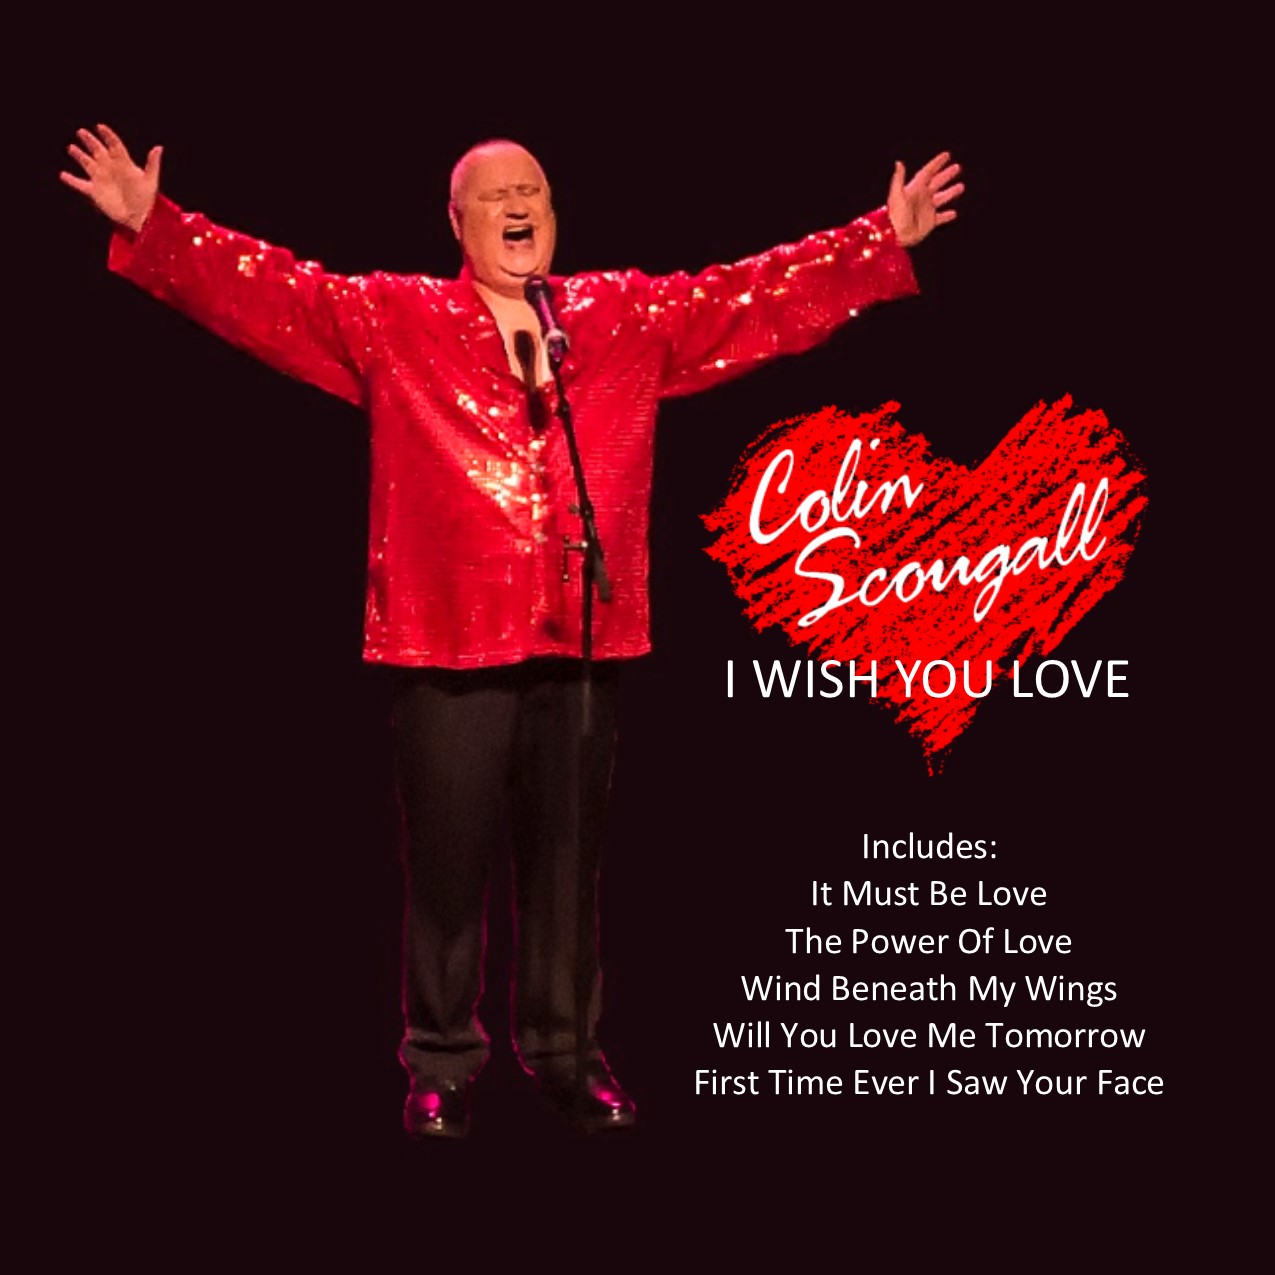 Colin Scougall - I Wish You Love (Album) - Digital Download